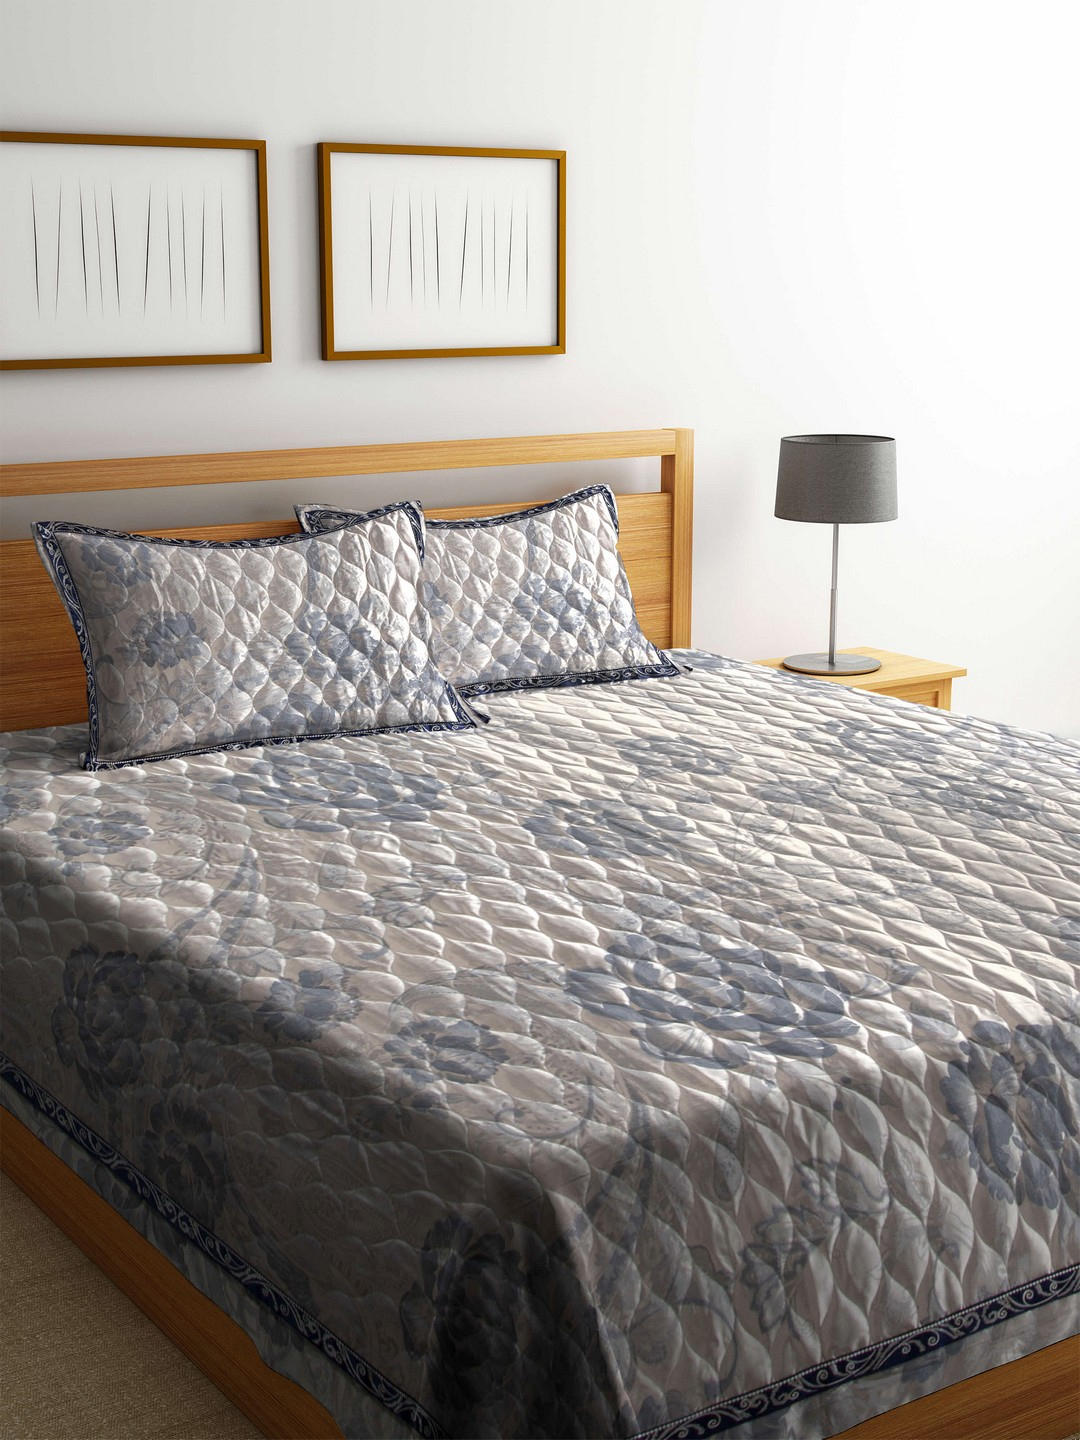 Buy Blush Grey 120 Tc Cotton Jacquard Double King Bed Cover With 2 Bedcover Image